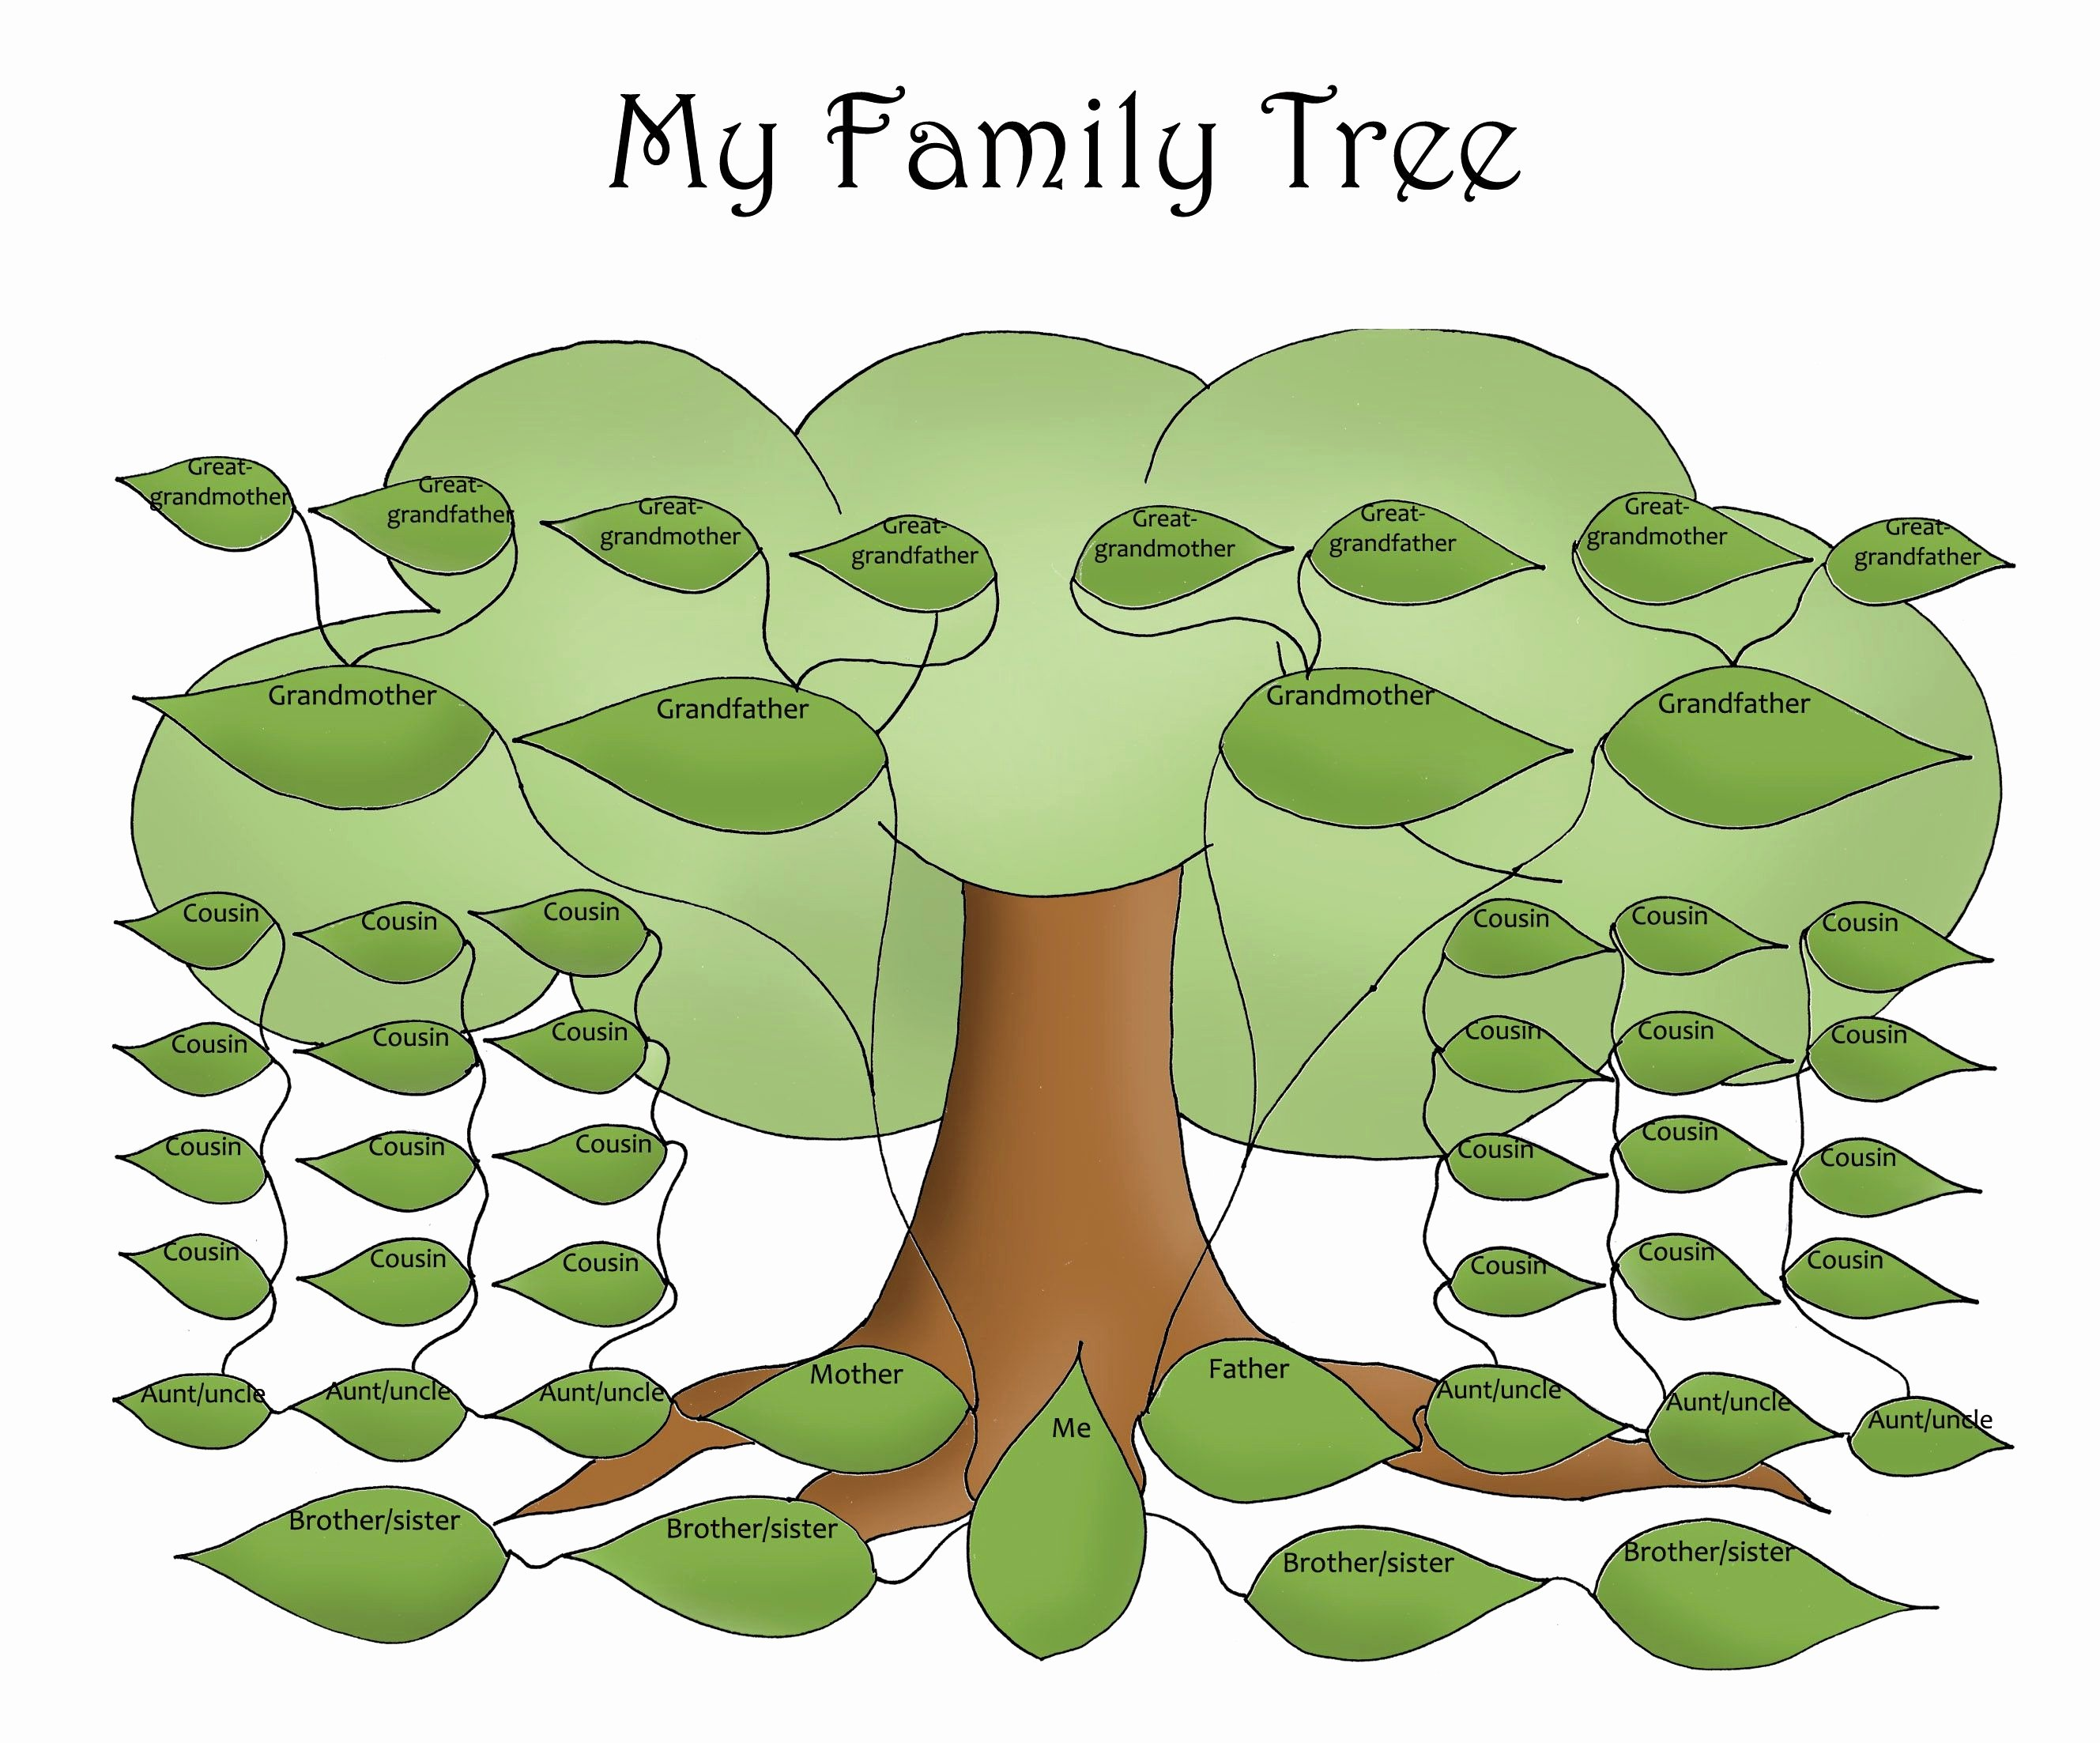 Spanish Family Tree Template Unique Free Editable Family Tree Template Daily Roabox